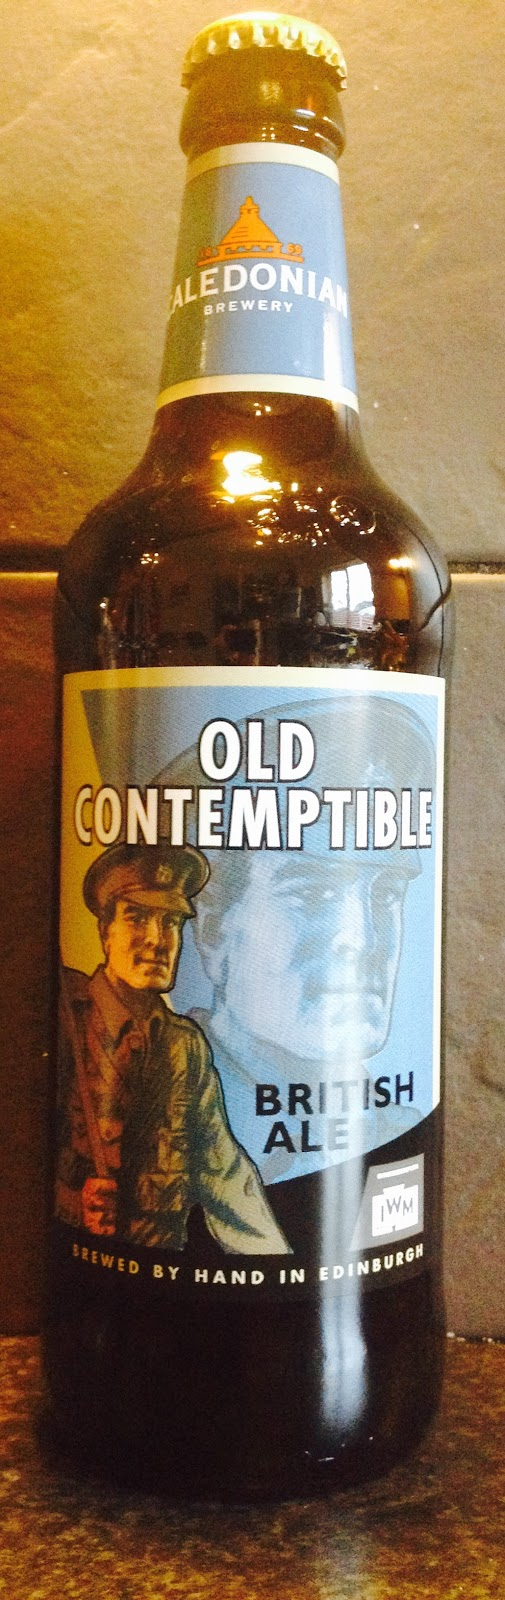 Old Contemptible (Caledonian)